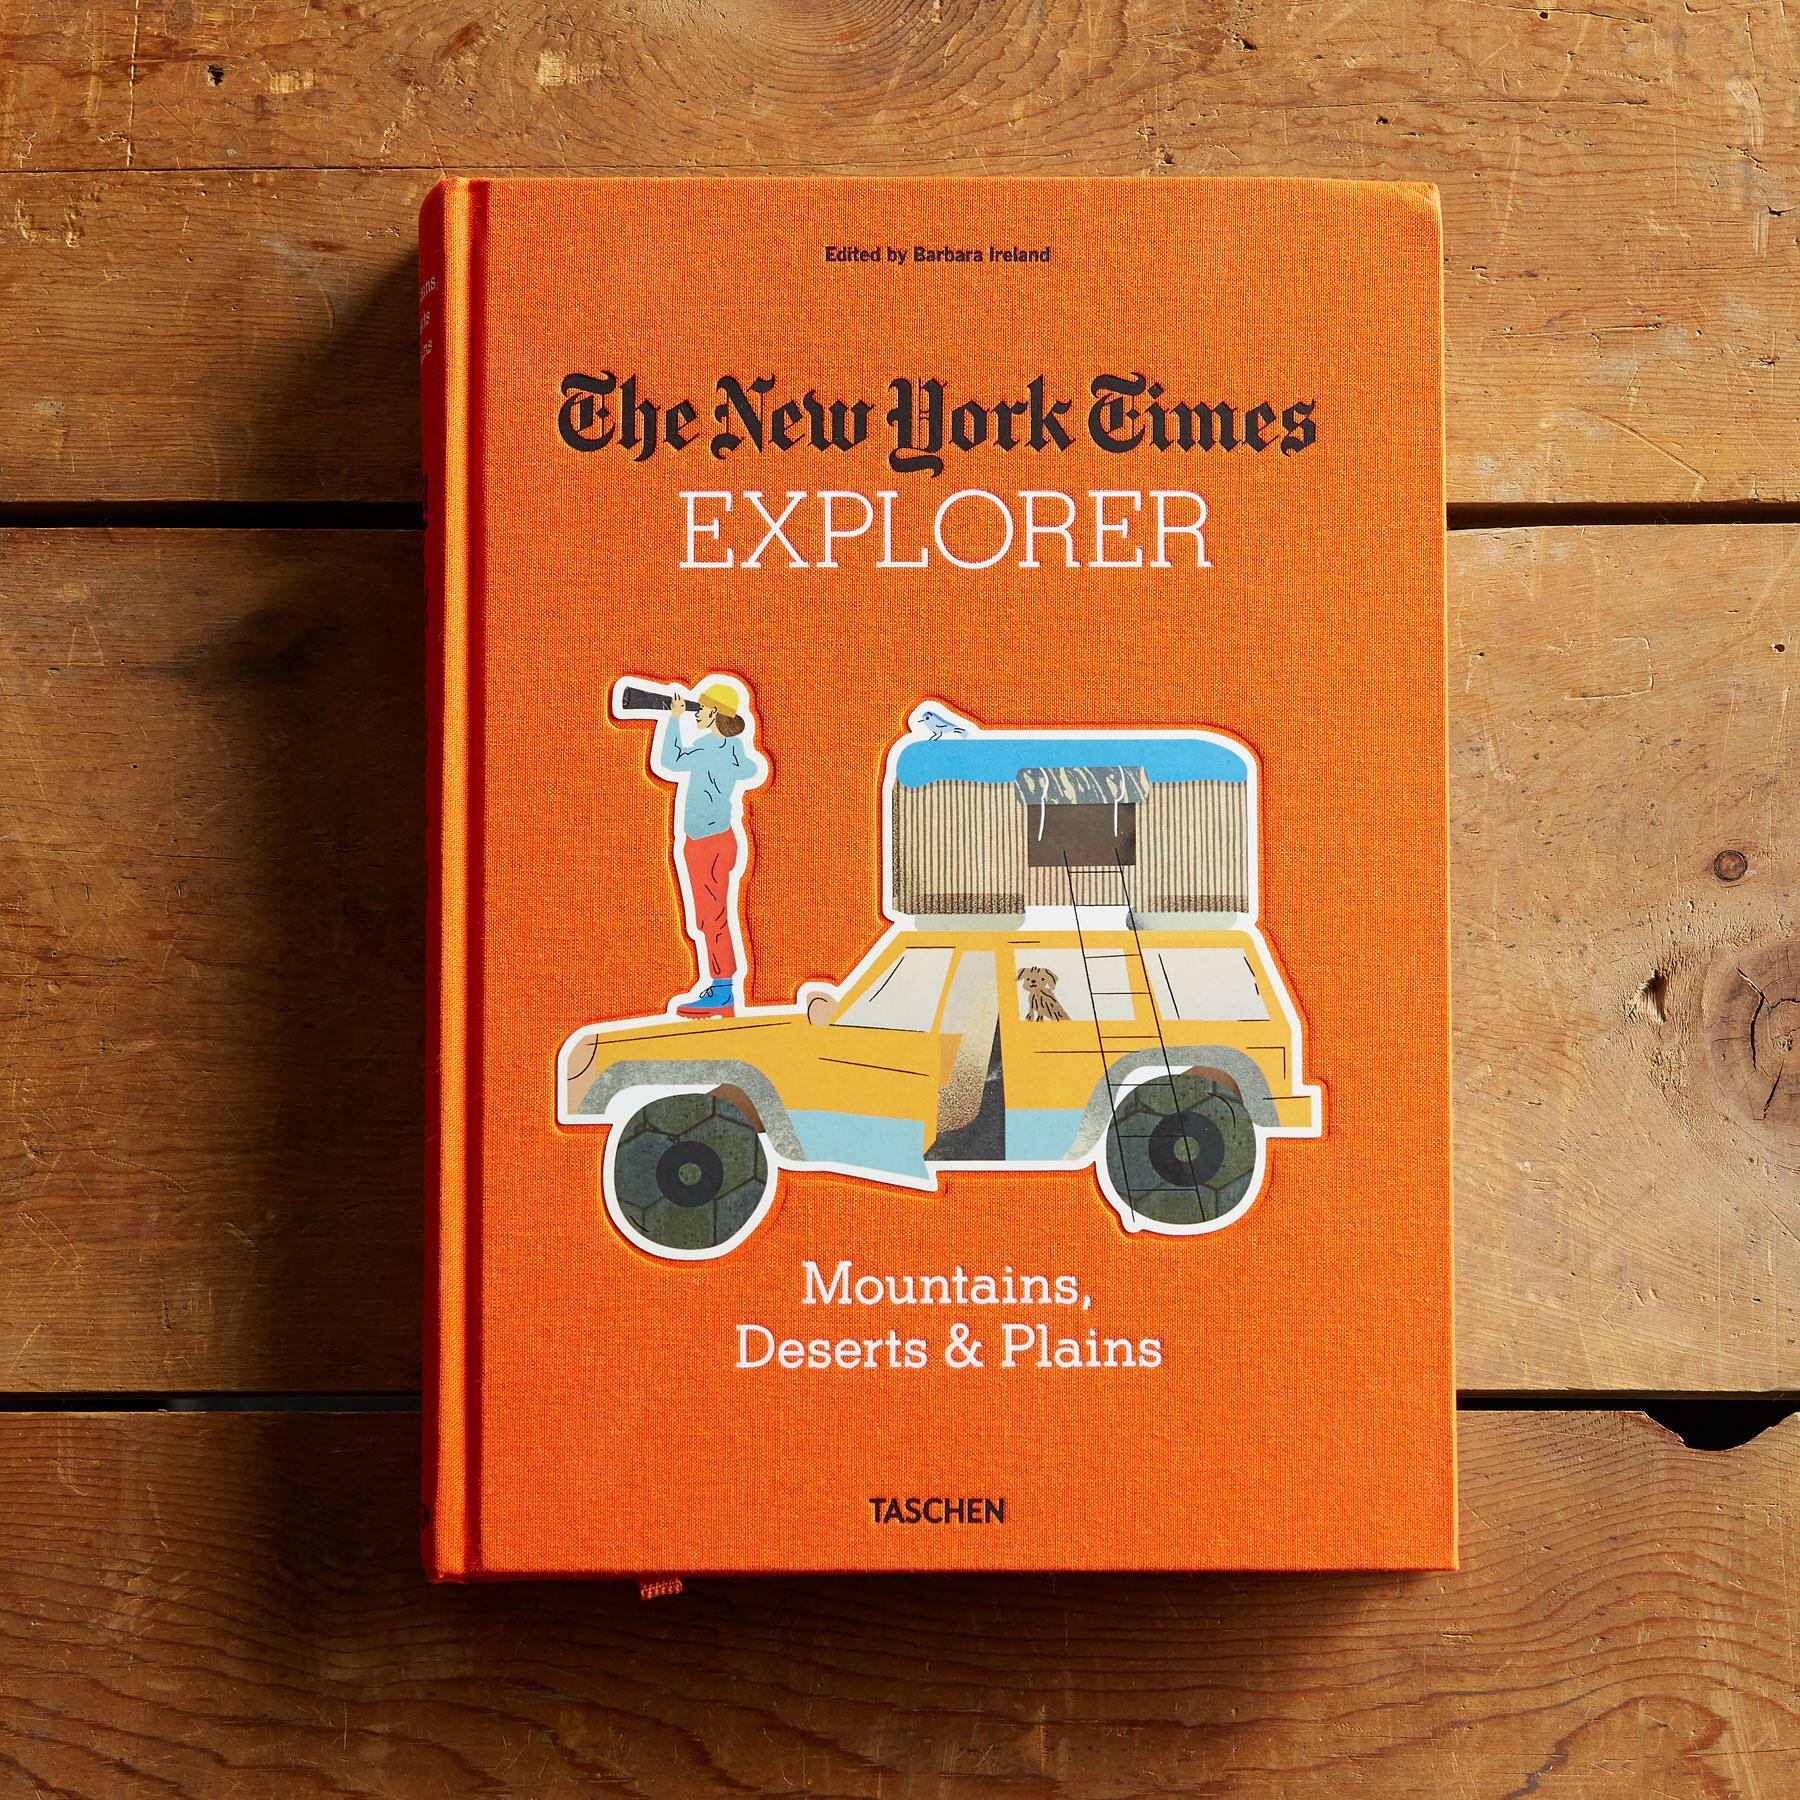 THE NEW YORK TIMES EXPLORER MOUNTAINS, DESERTS & PLAINS BOOK: View 1